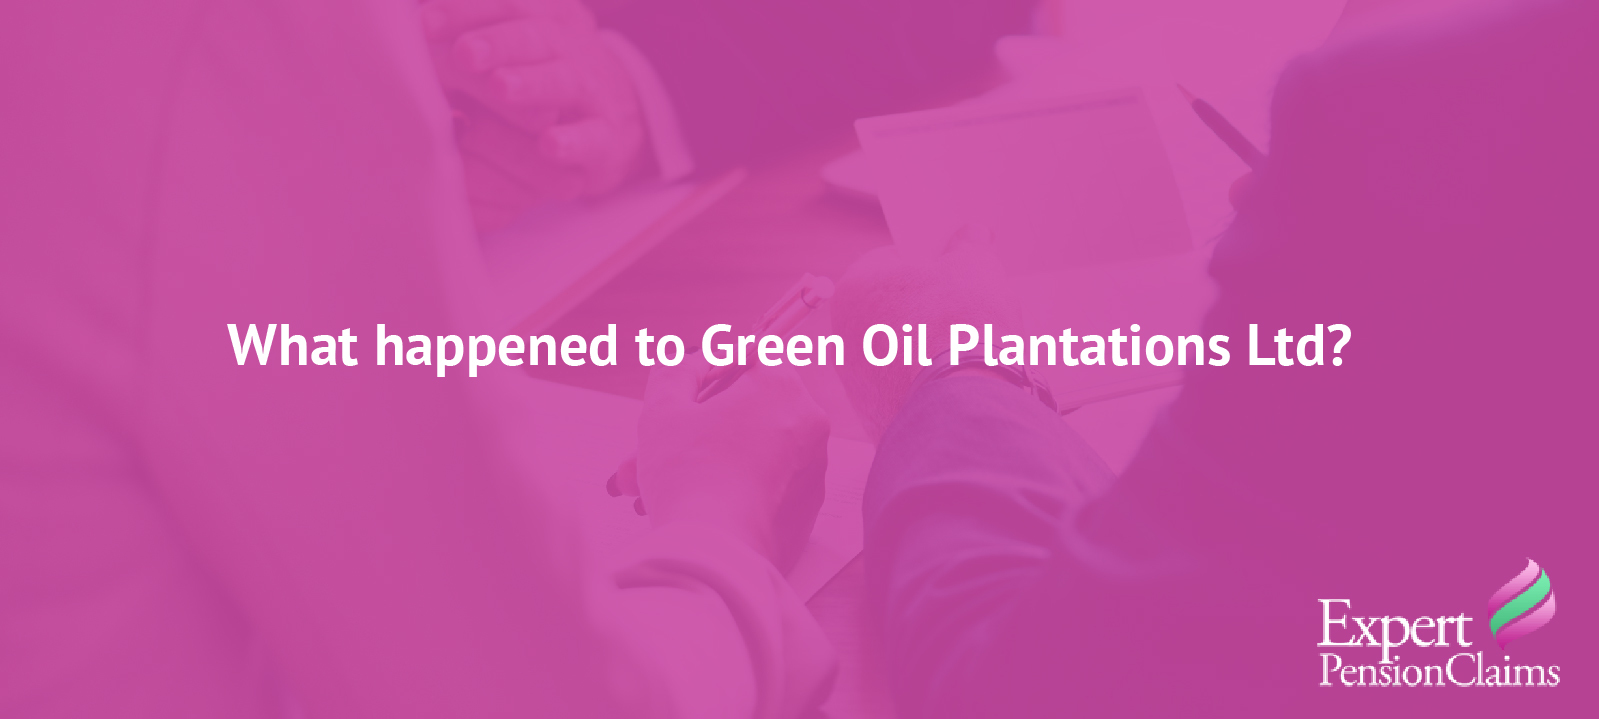 What happened to Green Oil Plantations Ltd?